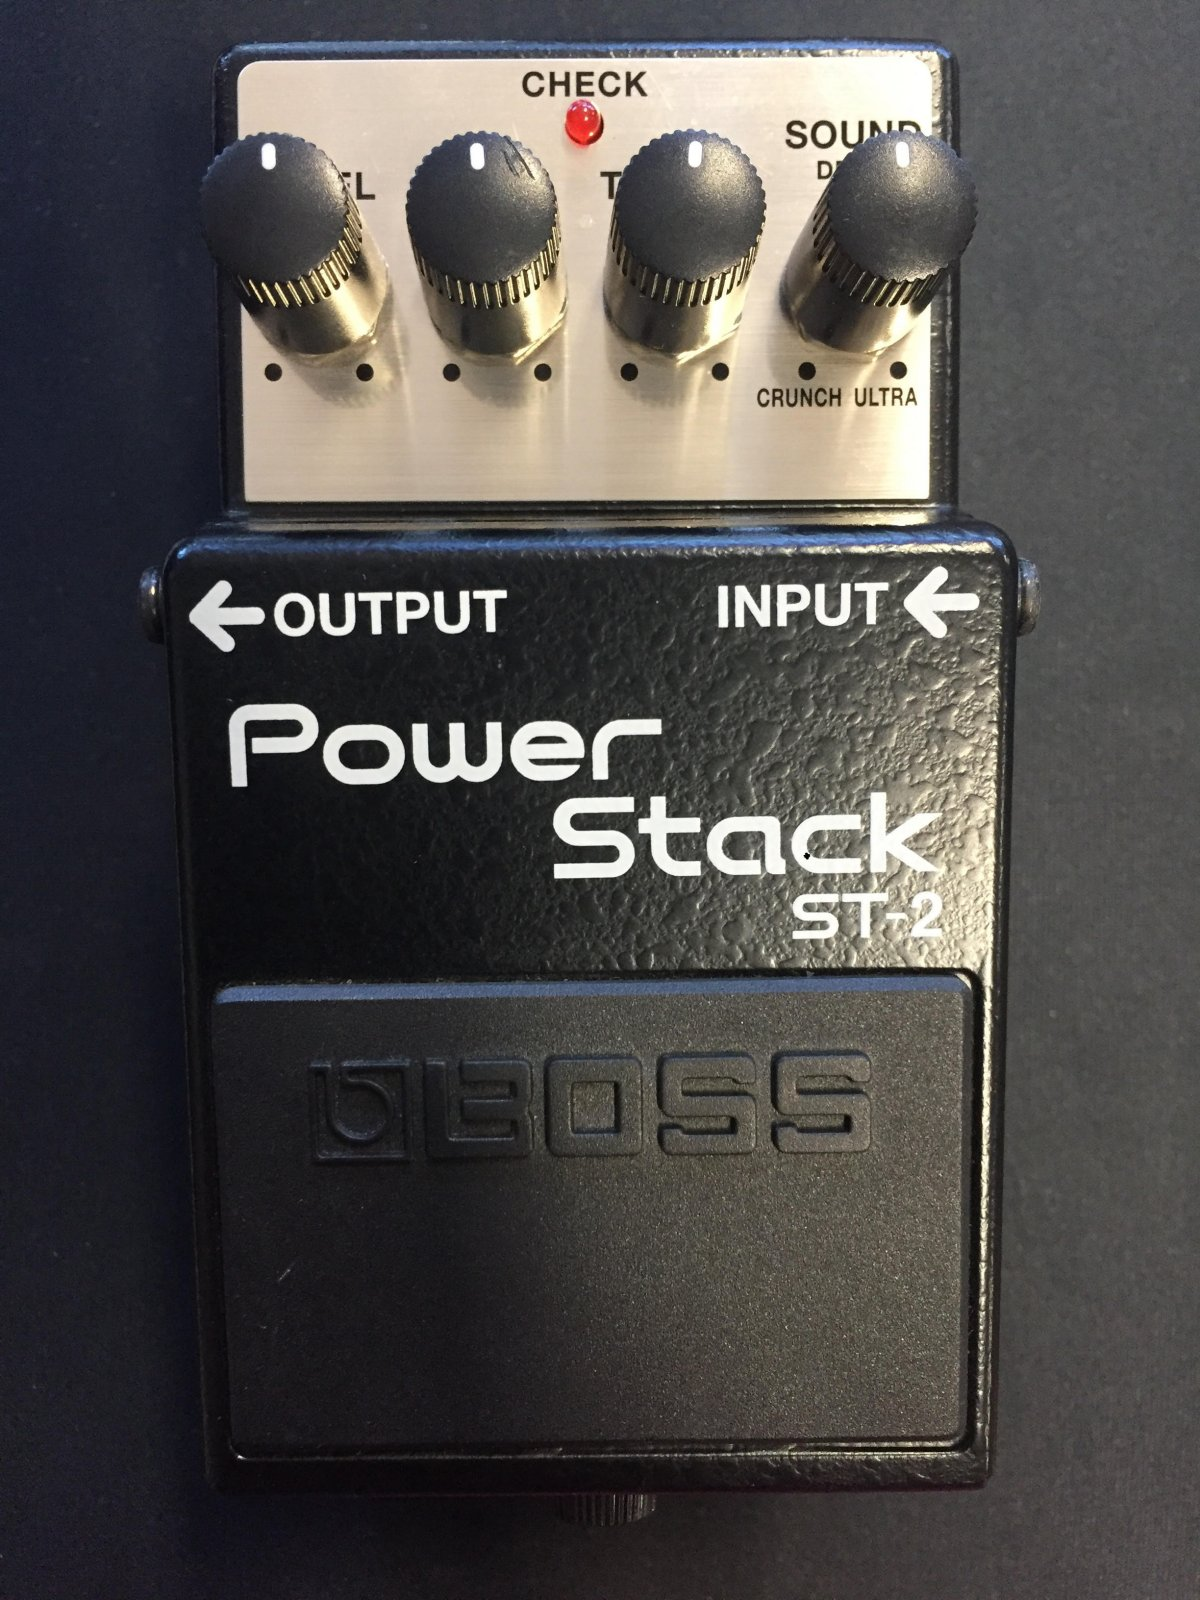 The Boss ST-2 Power Stack